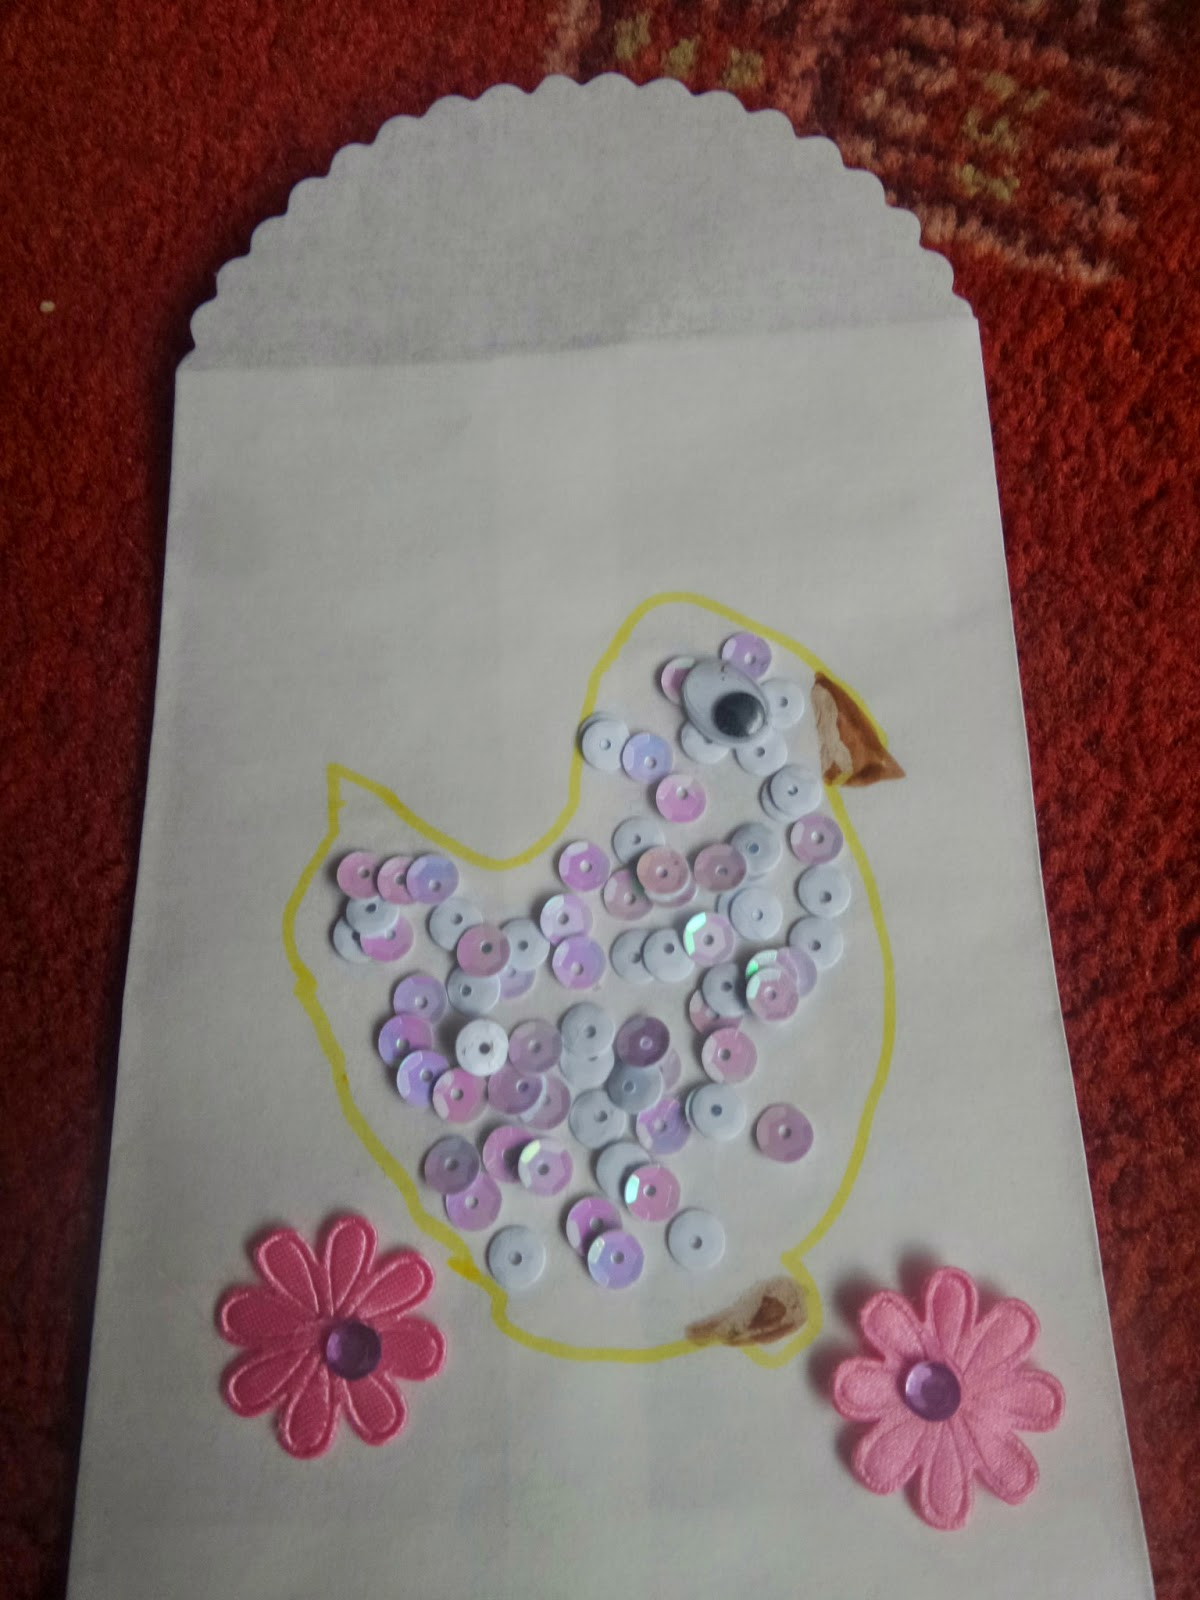 A sequined Chick on an envelope